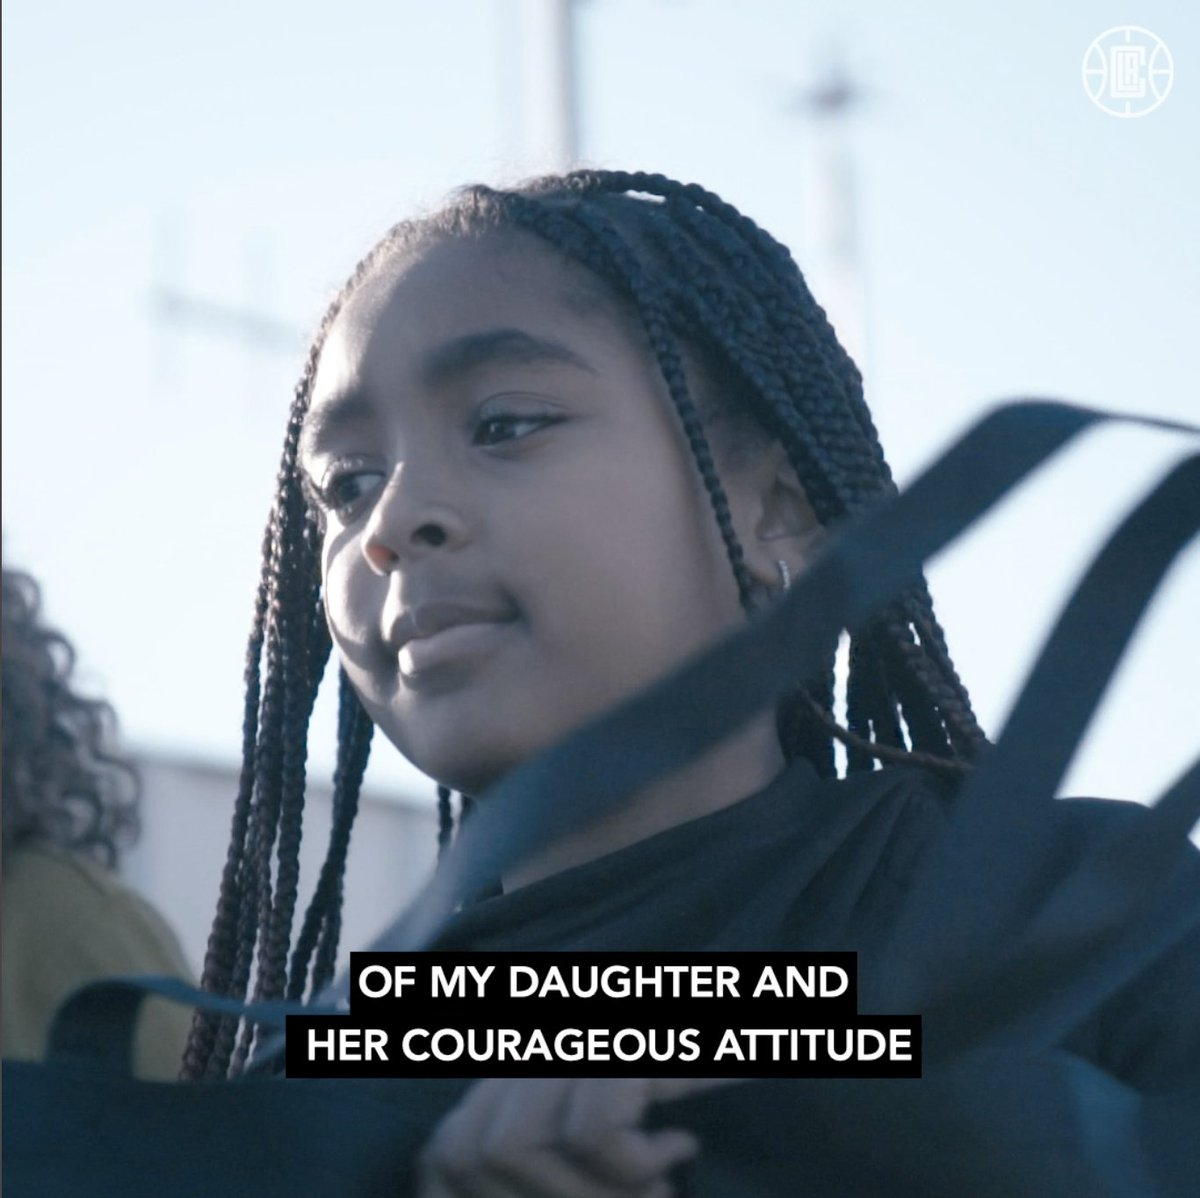 """""""This is Jada's drive. I'm just here to support my daughter and her courageous attitude.""""  @TeamLou23's daughter texted her dad that she wanted to give back, so they made it happen. #SeasonOfGiving"""